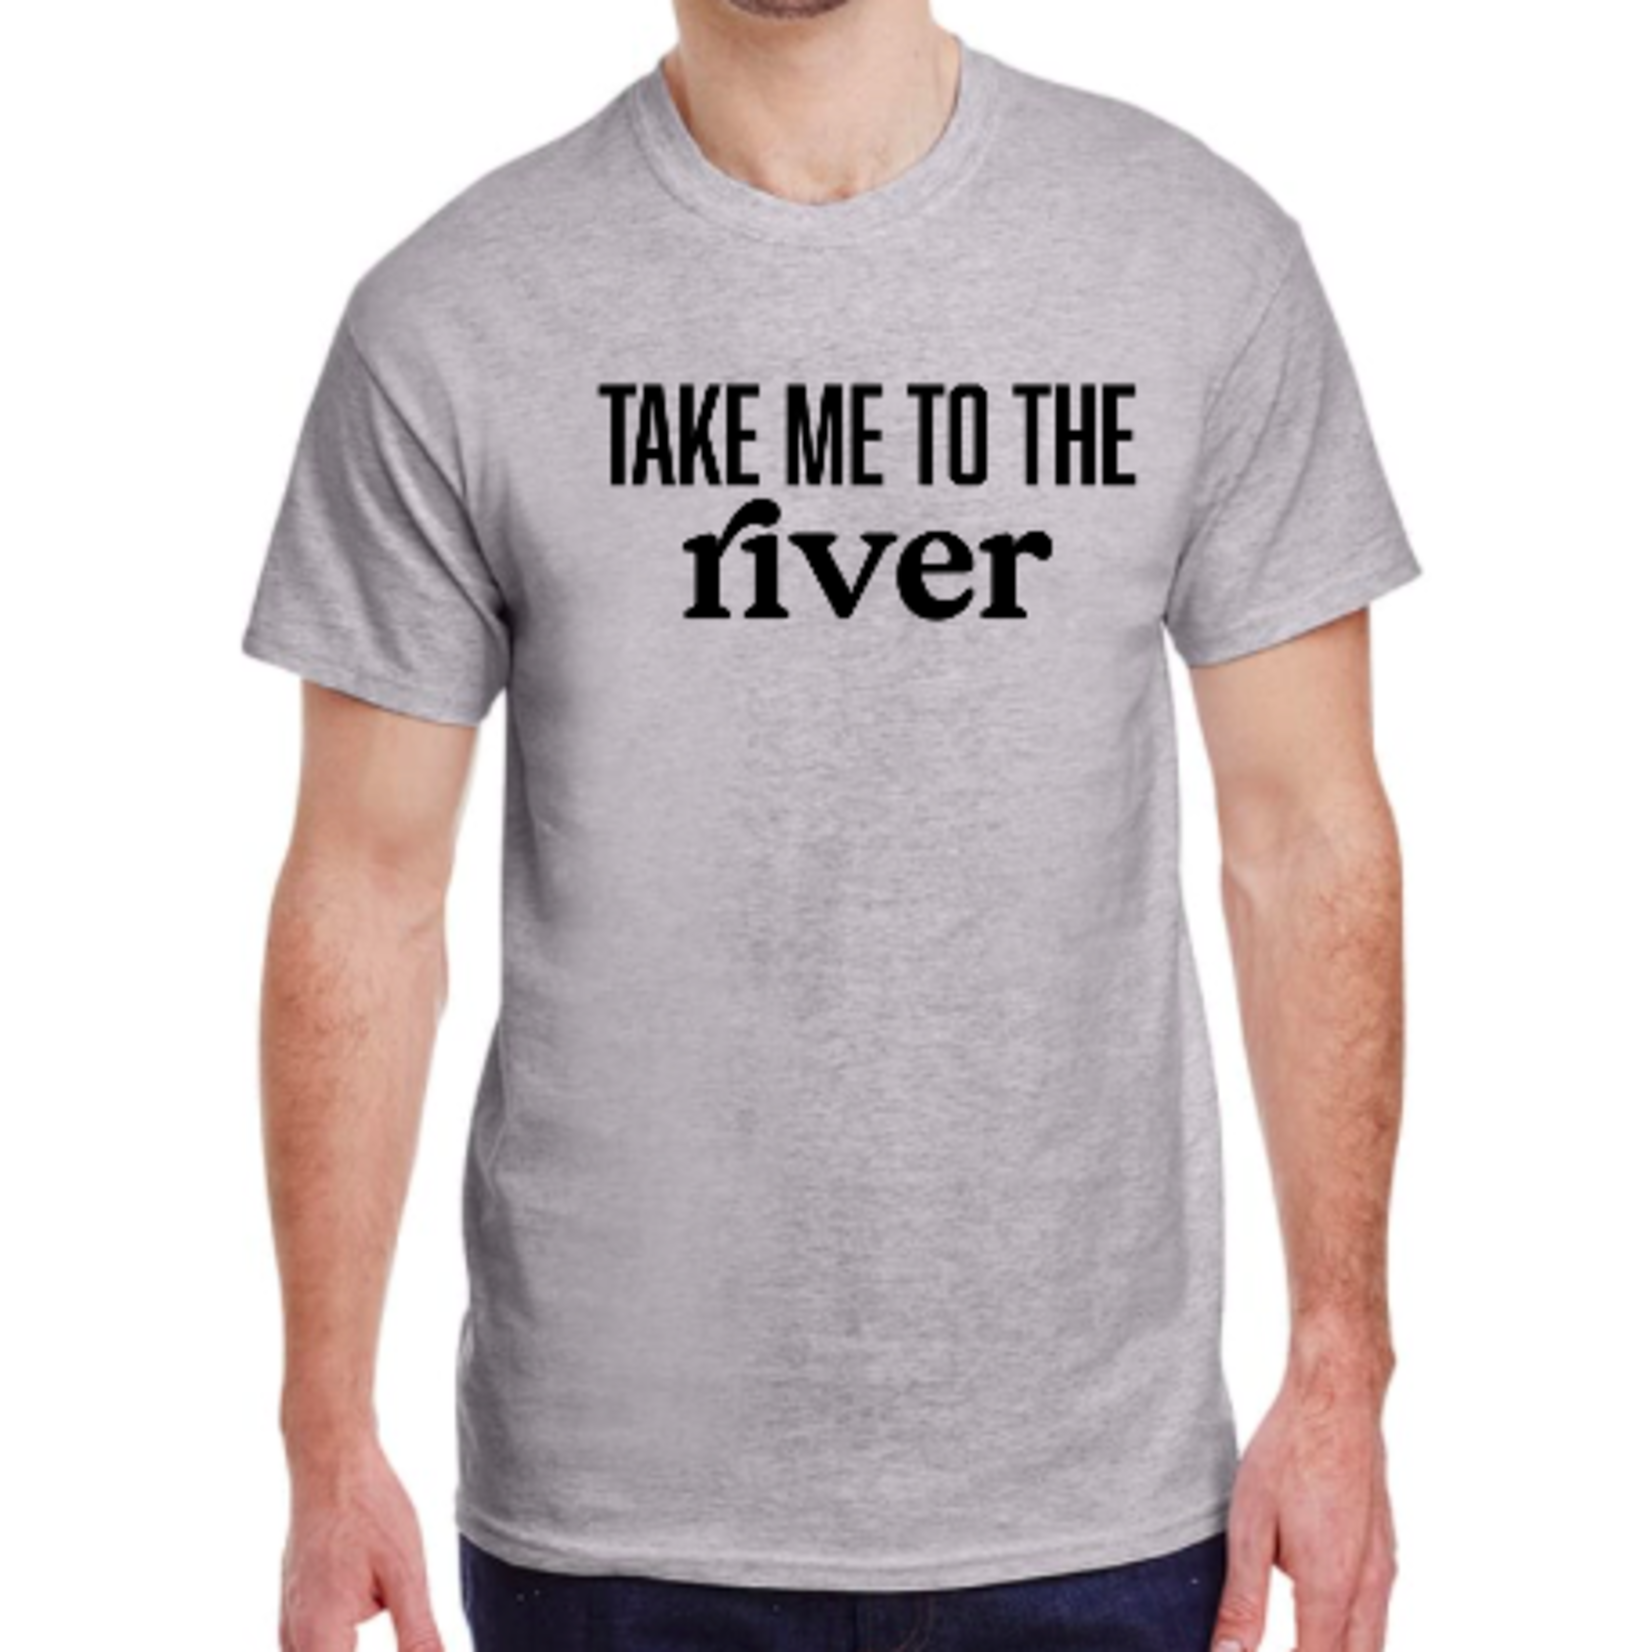 favourite things apparel Men's T-shirt: Take me to the river